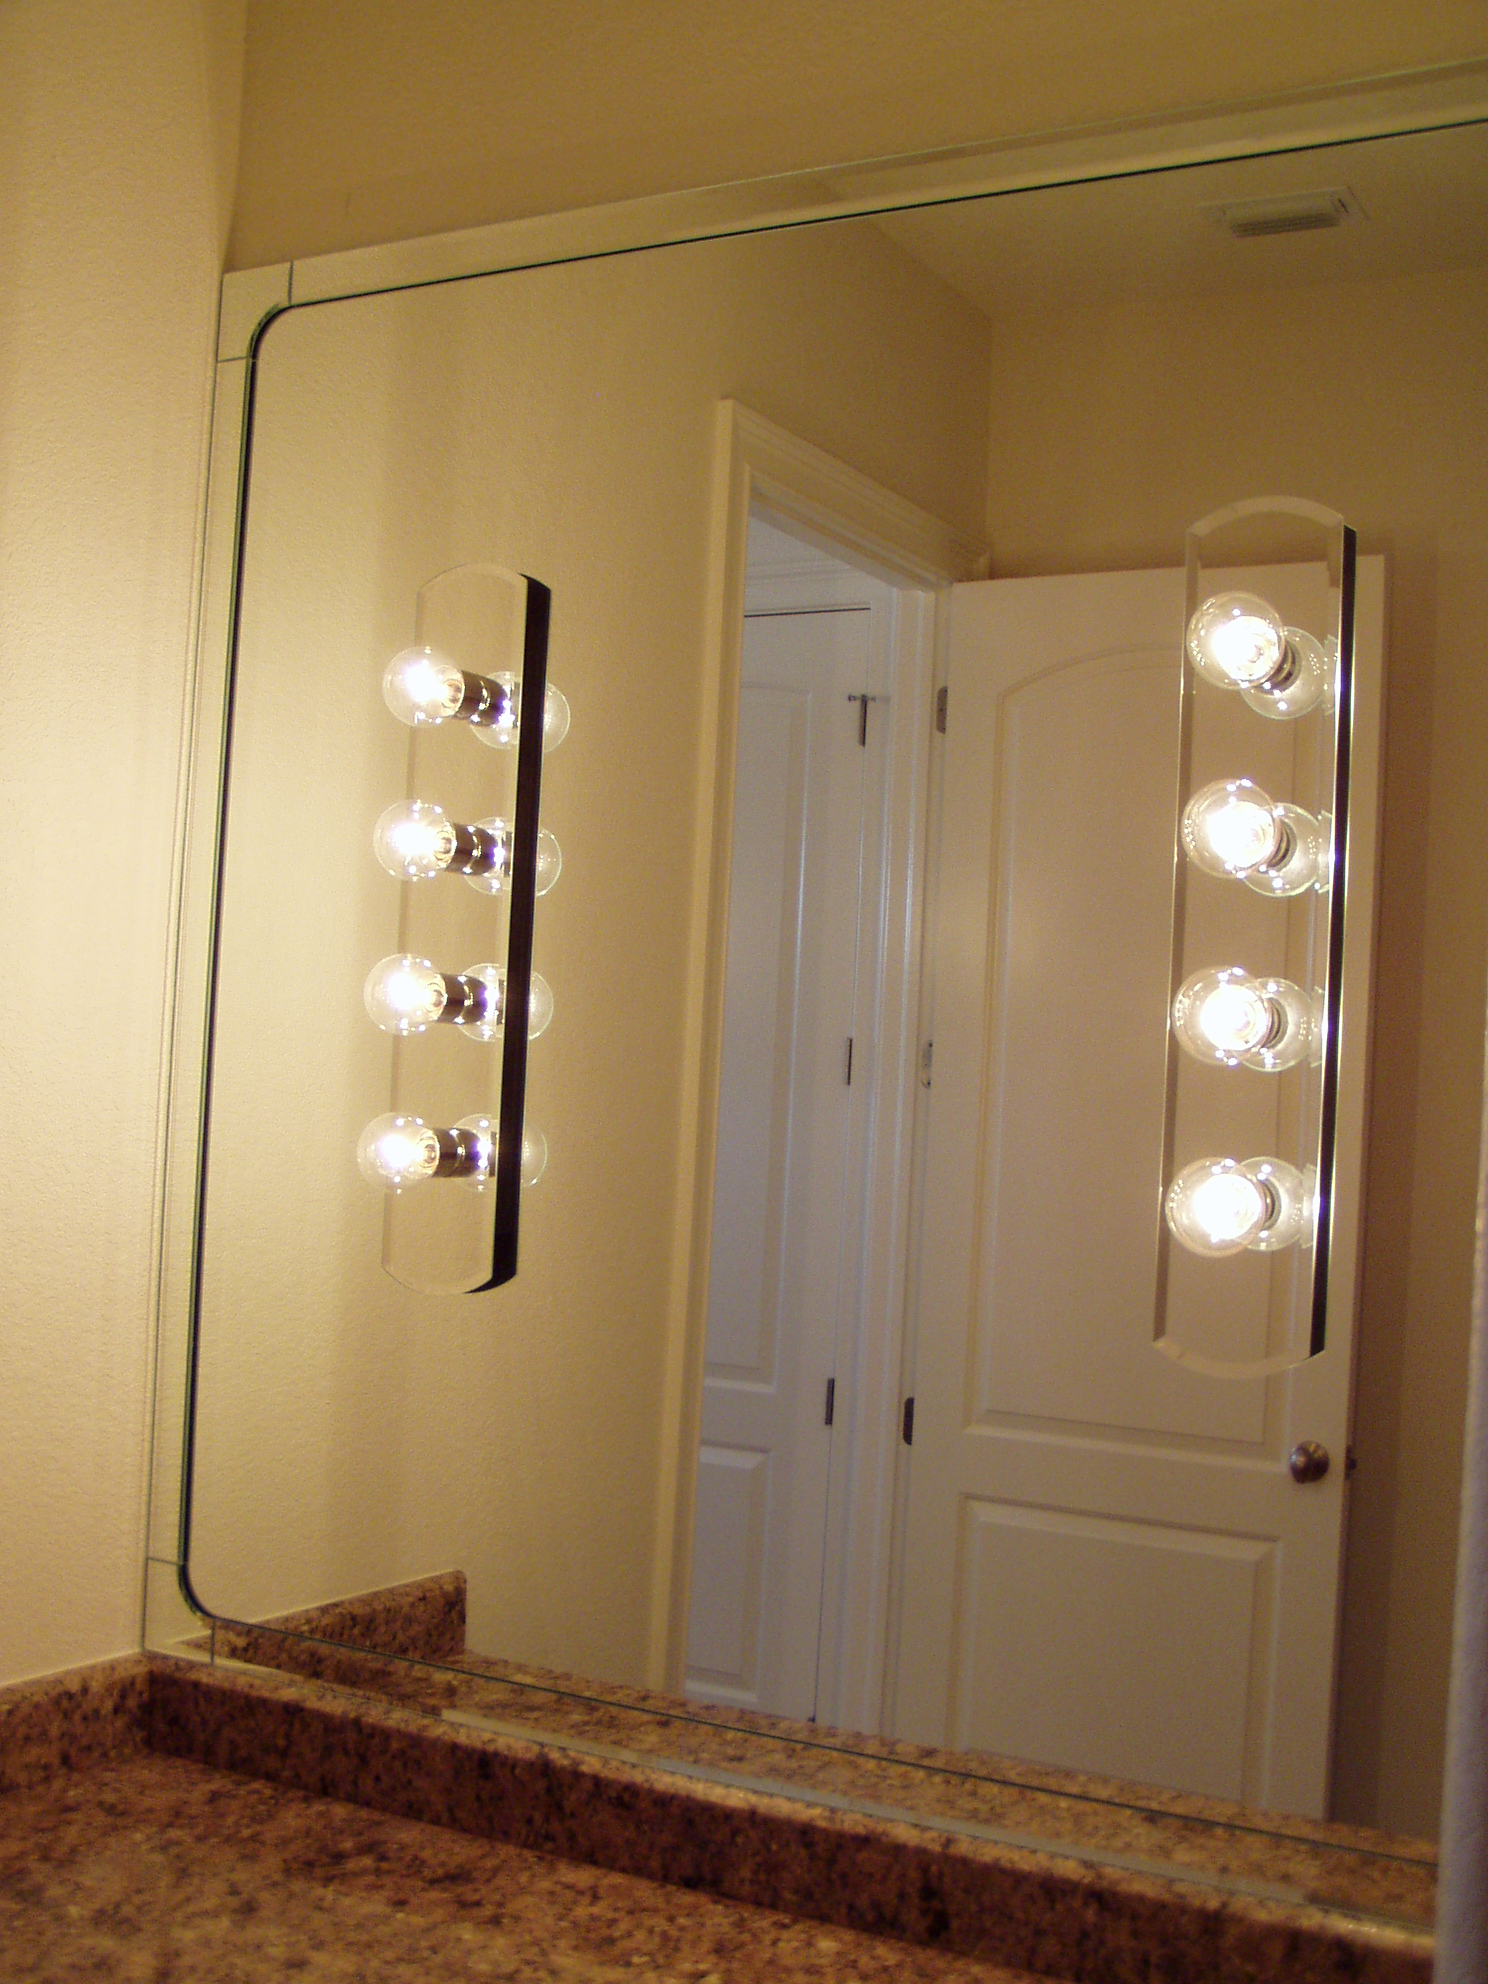 1 4 Clear Mirror With 2 Bevel Strips Majestic Corner Blocks And Holes For Customer Provided Lights